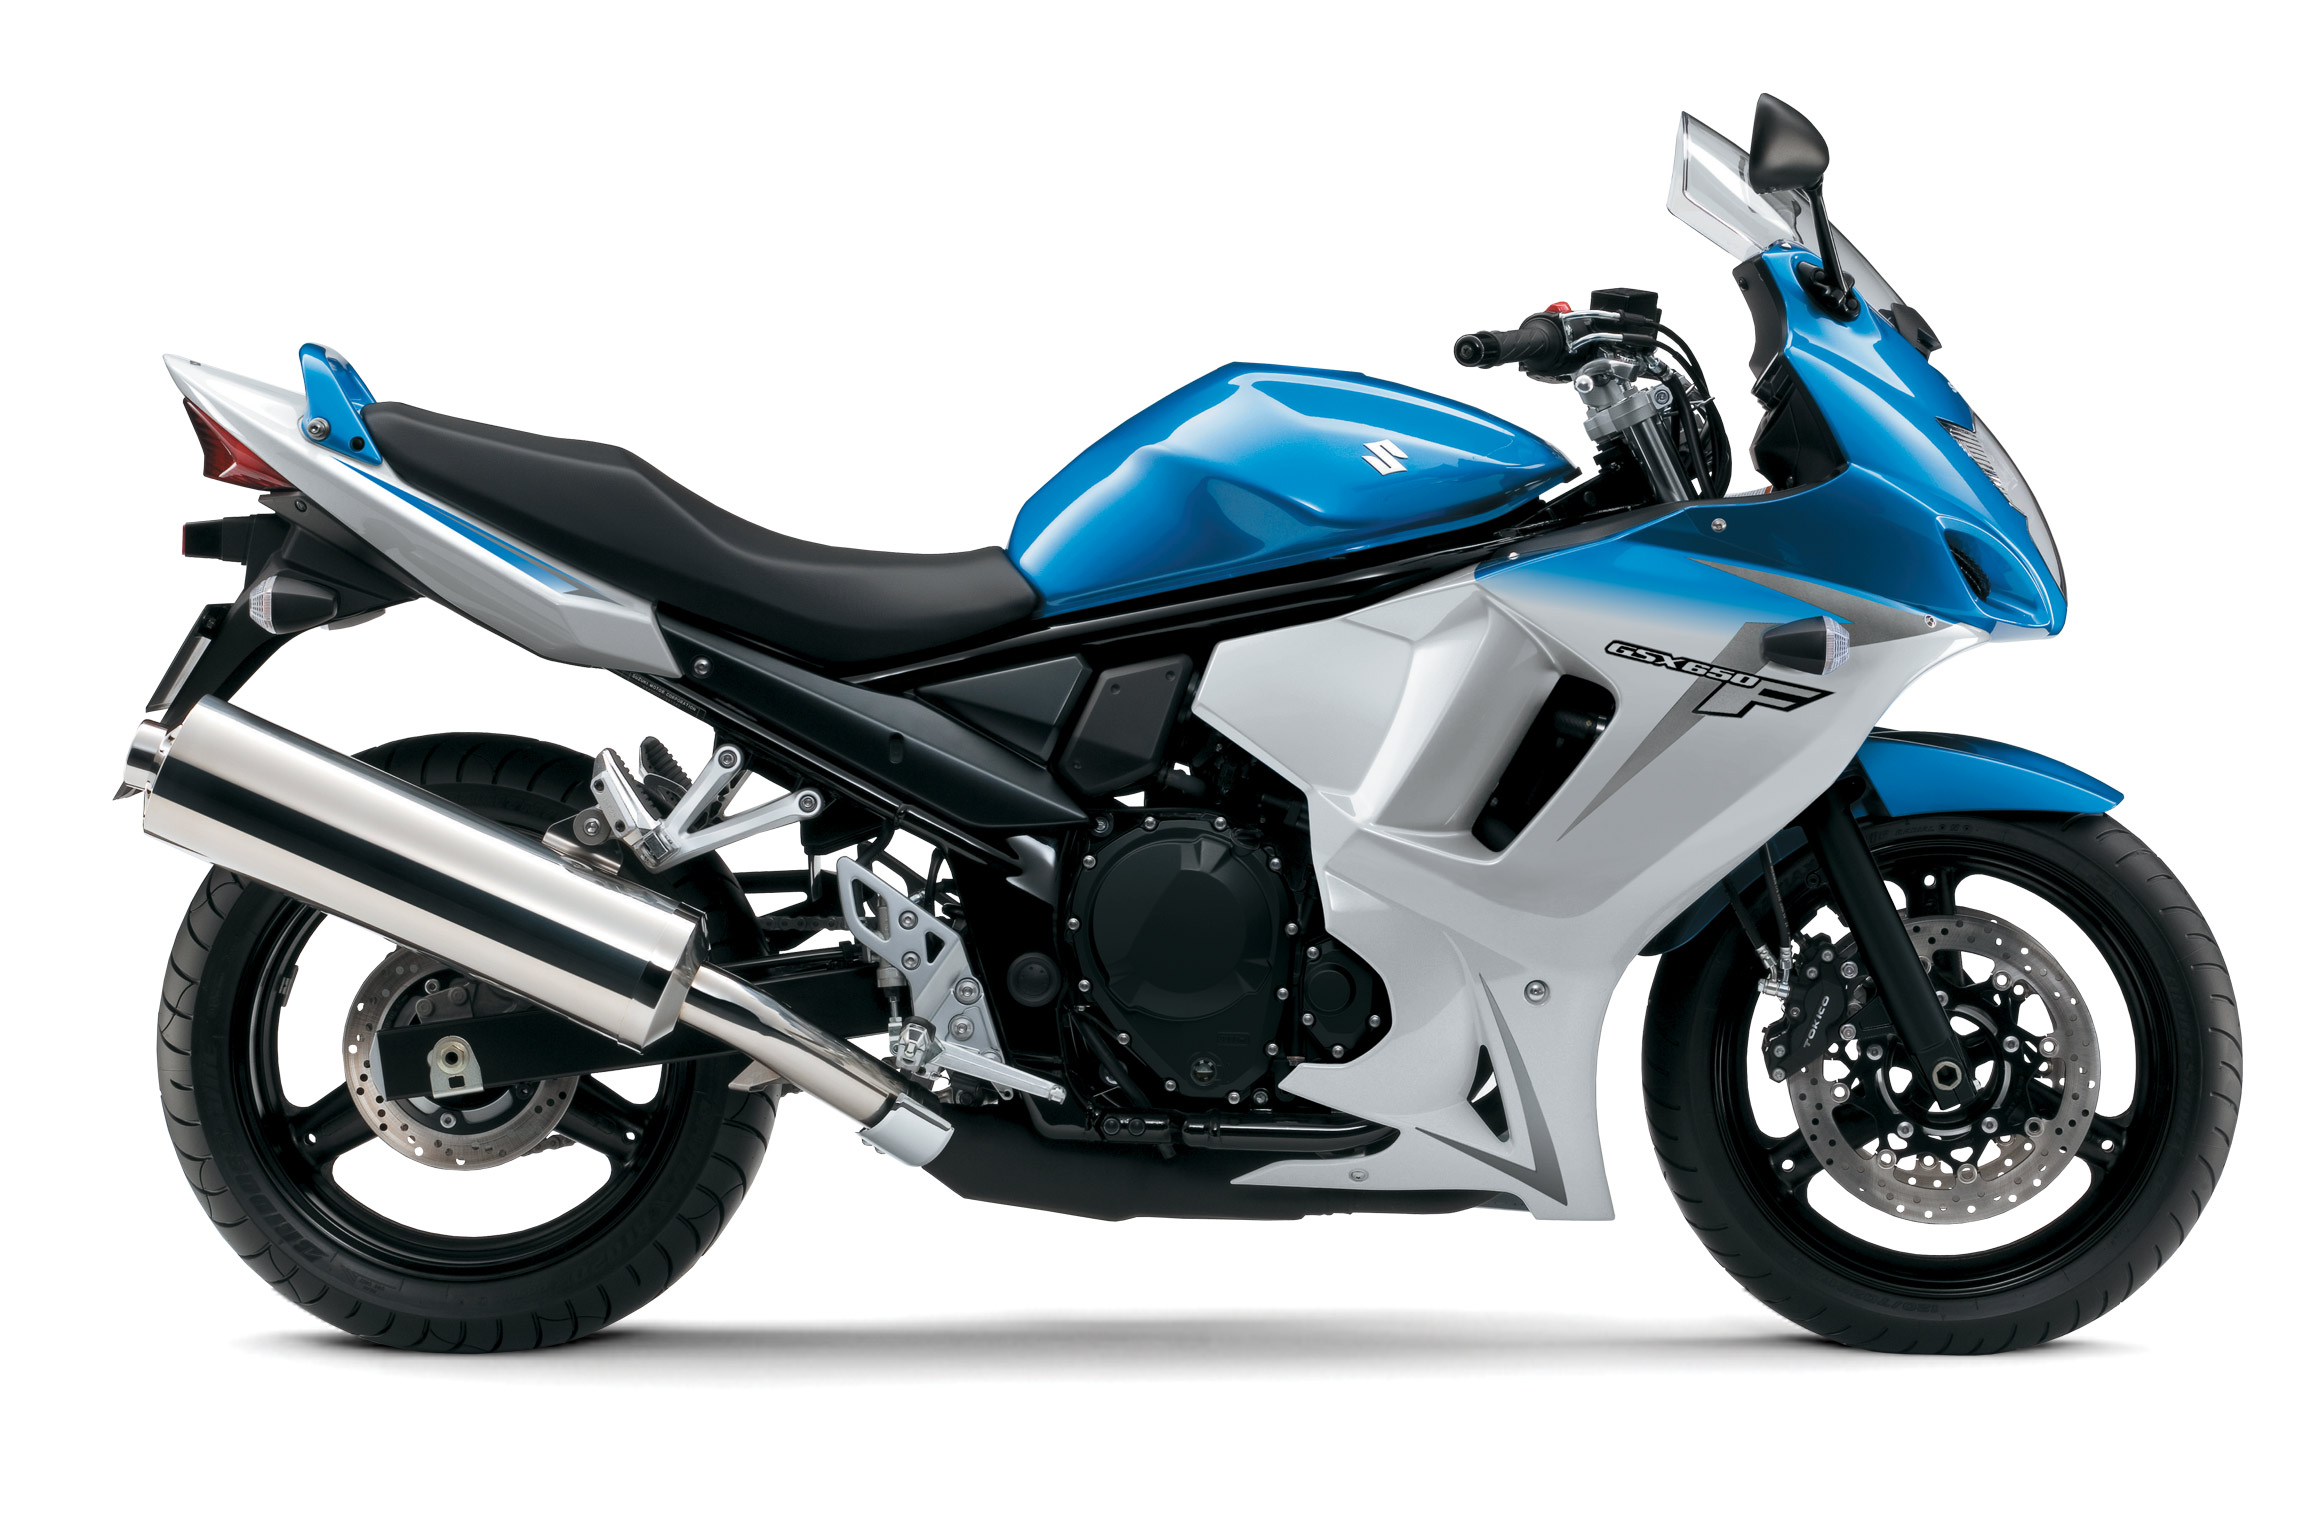 Suzuki gsx650f photo - 2